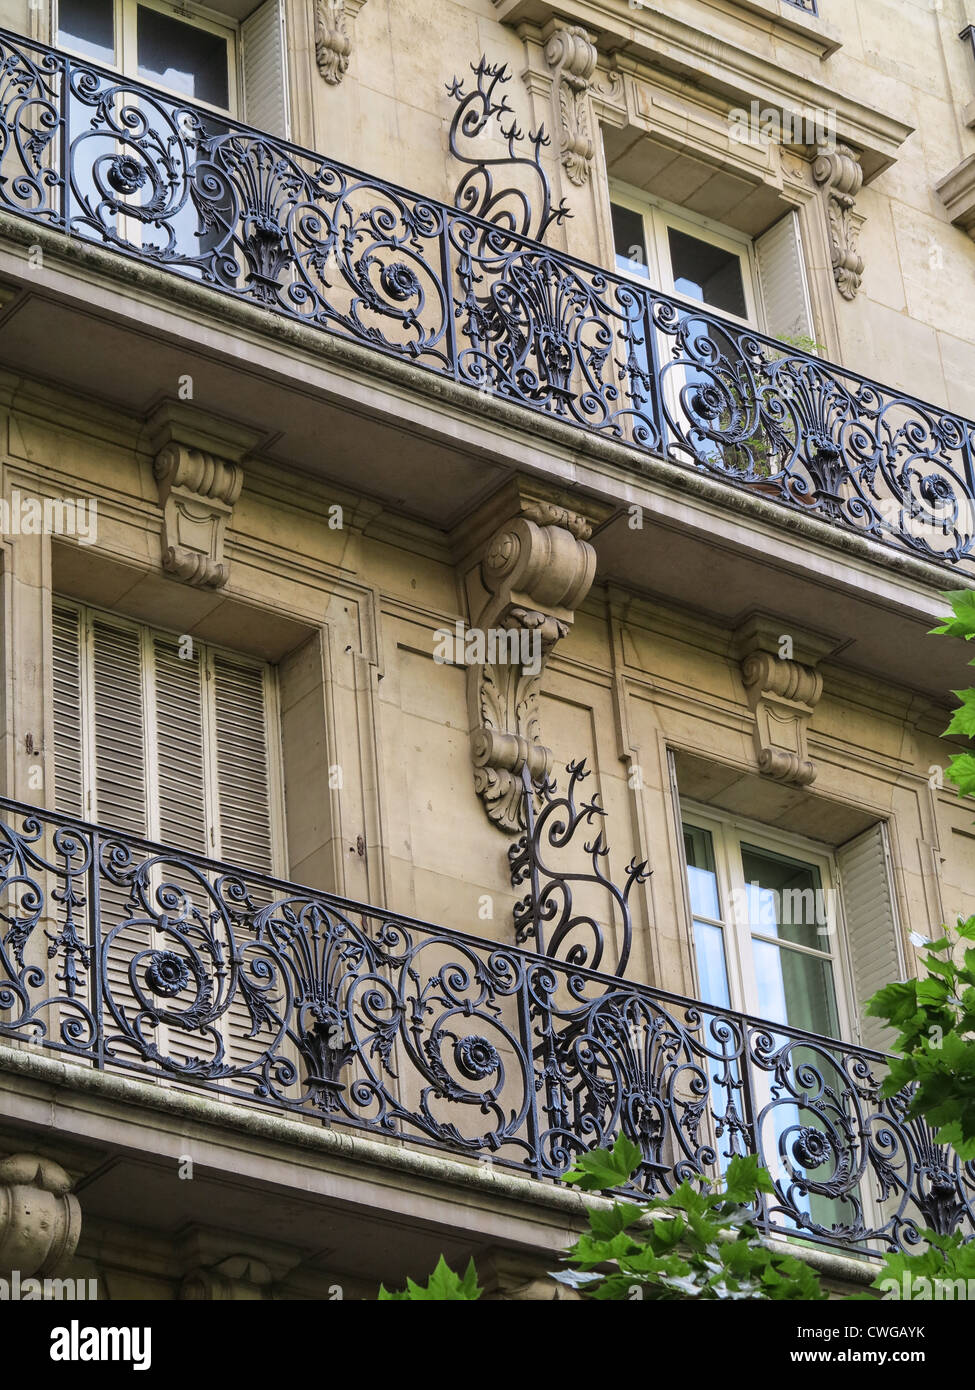 Wrought Iron Railings And Burglary Deterrents On Buildings